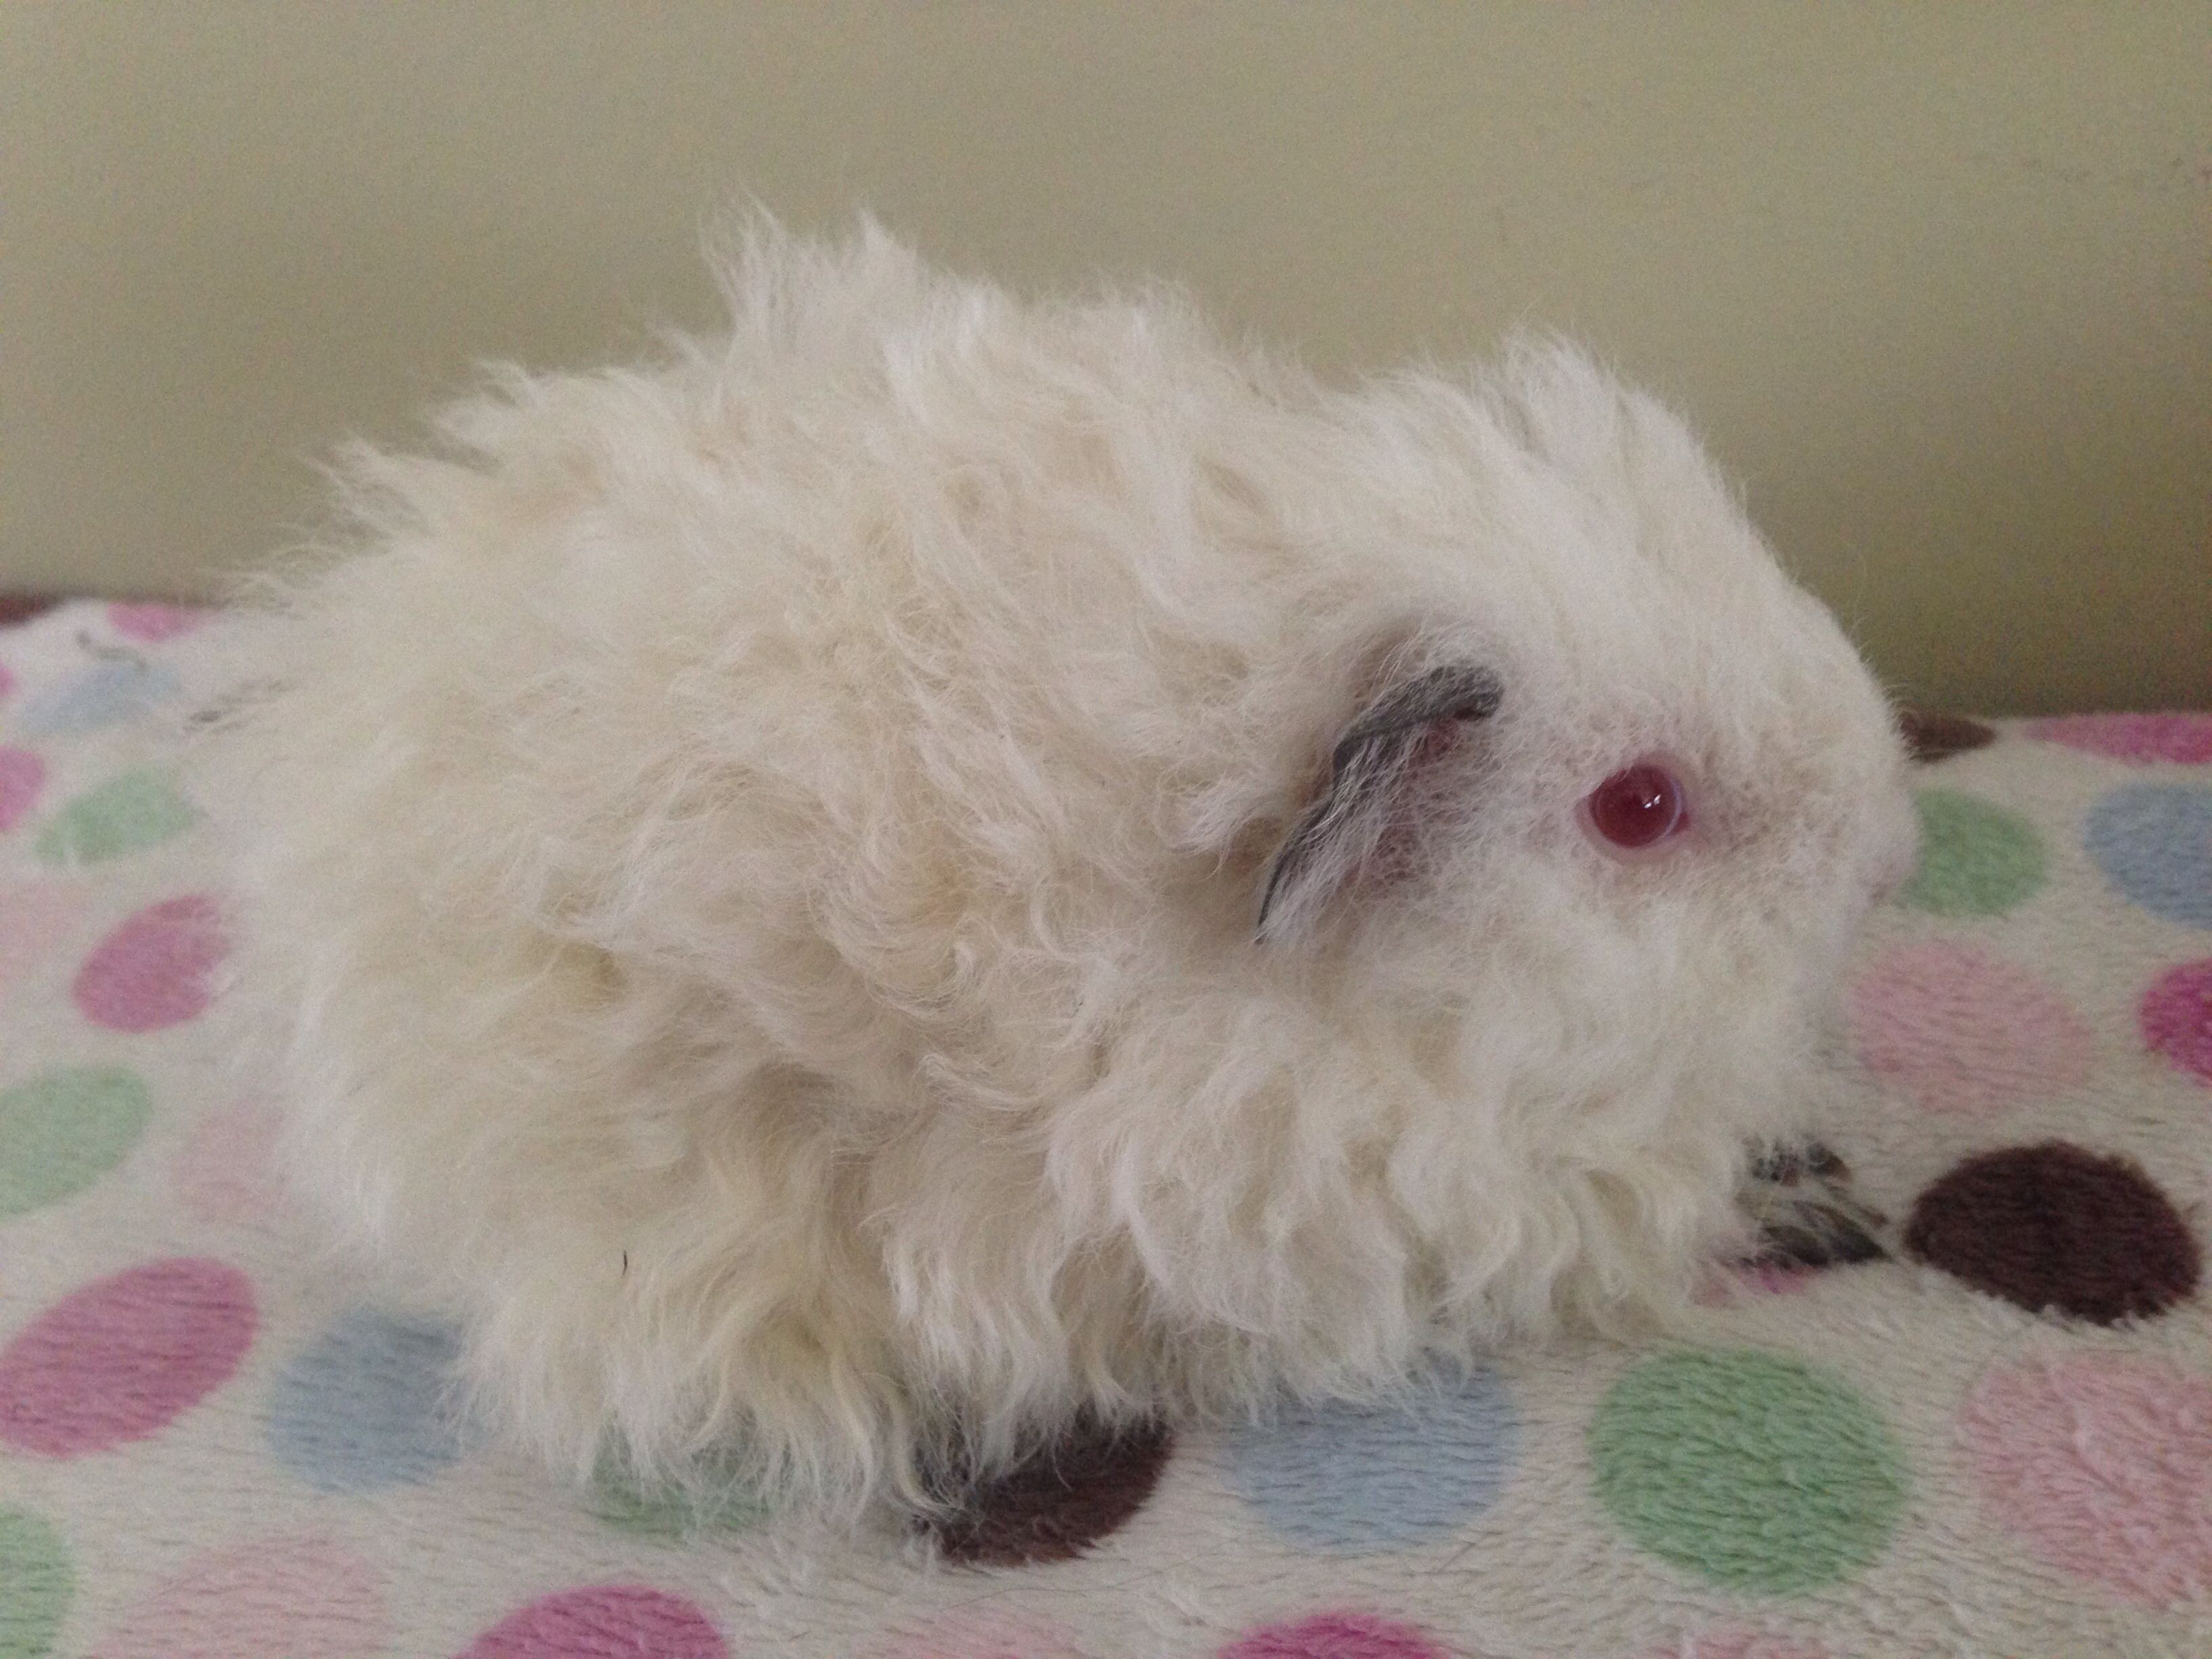 Another beautiful baby Texel arrived at the Caviary last wheek from Stylish Cavies!